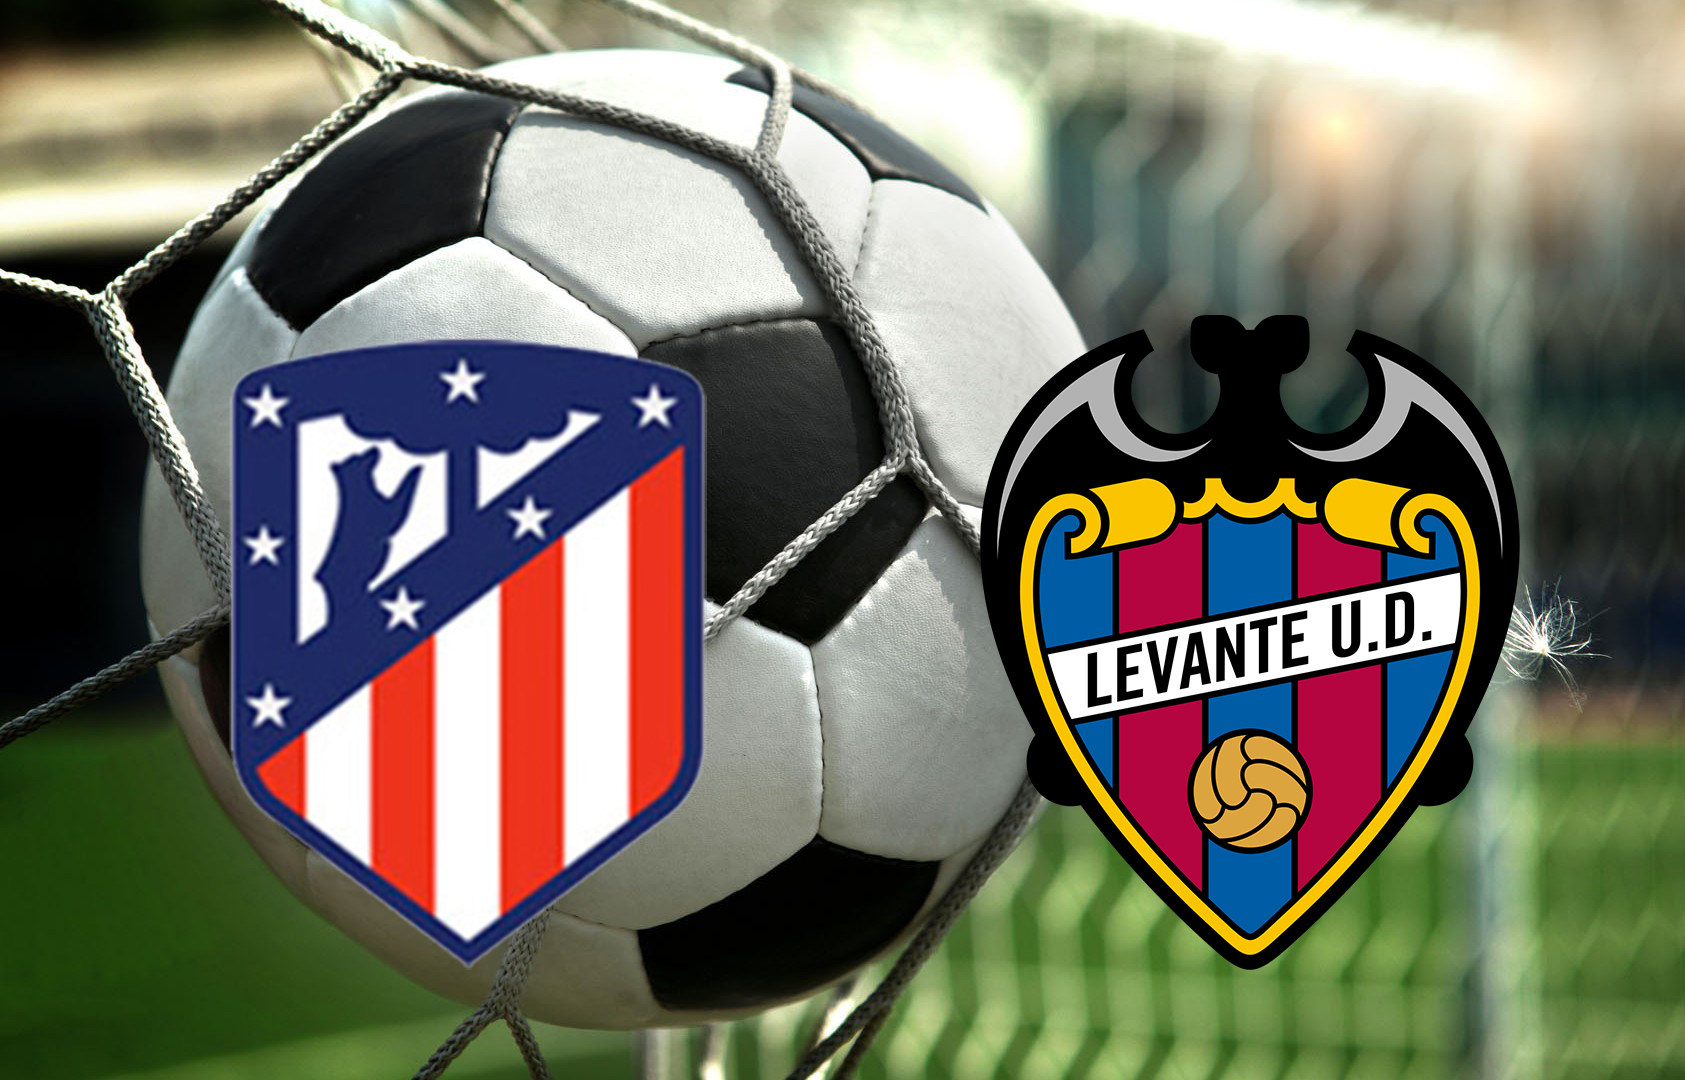 atletico-madrid-vs-levante-tip-bong-da-15-4-2018 1